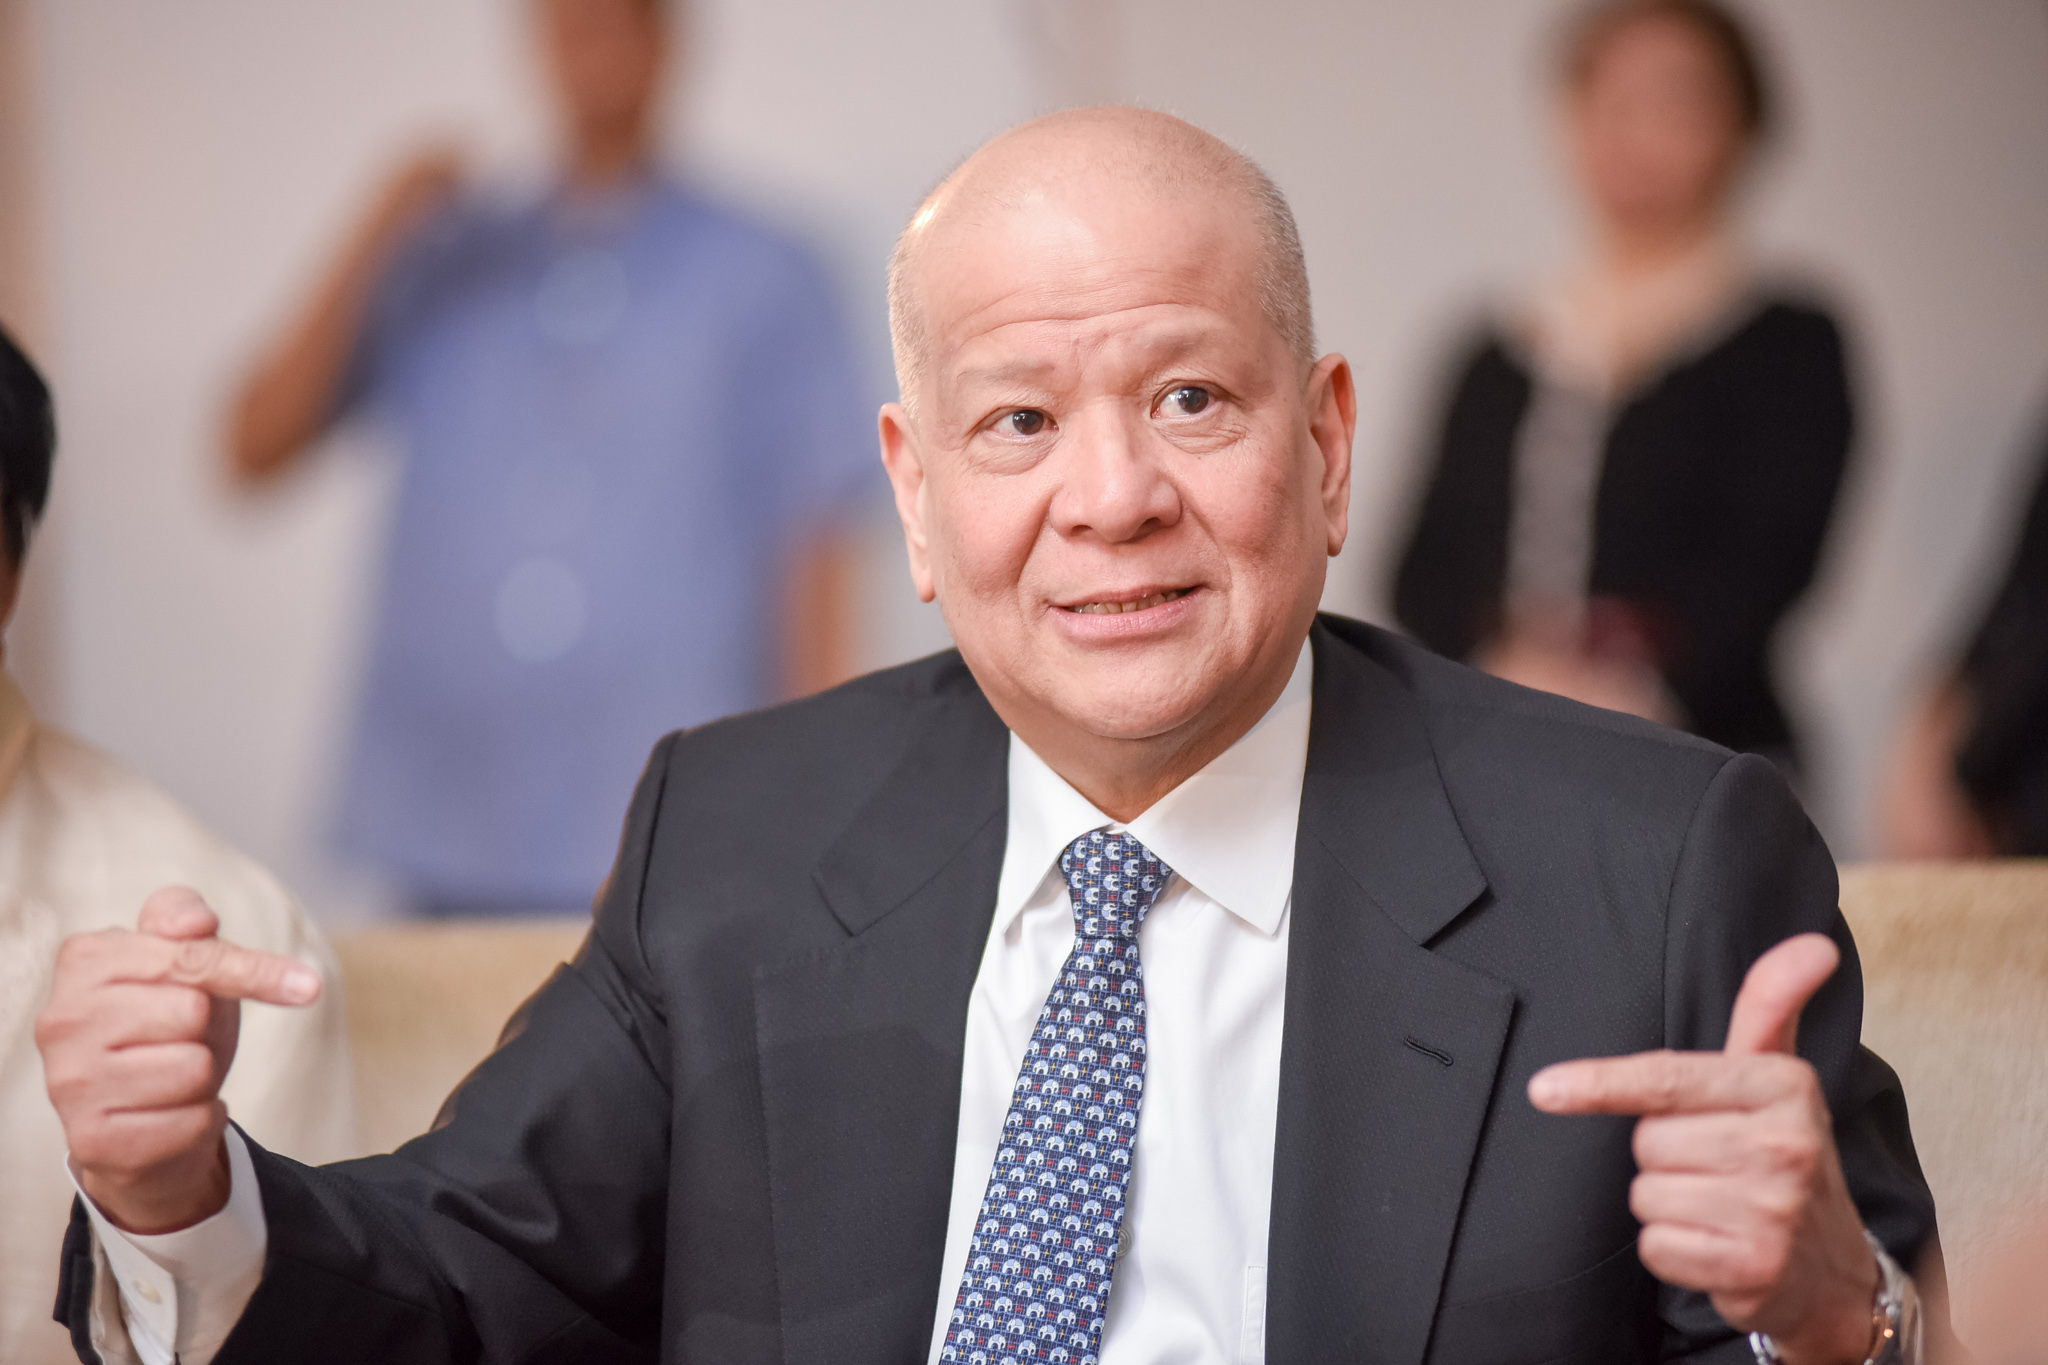 NEW PLANT. 'We will break ground soon,' tycoon Ramon Ang says about San Miguel Corporation's new bottling and brewery plant in Cagayan de Oro City. Photo by Martin San Diego/Rappler